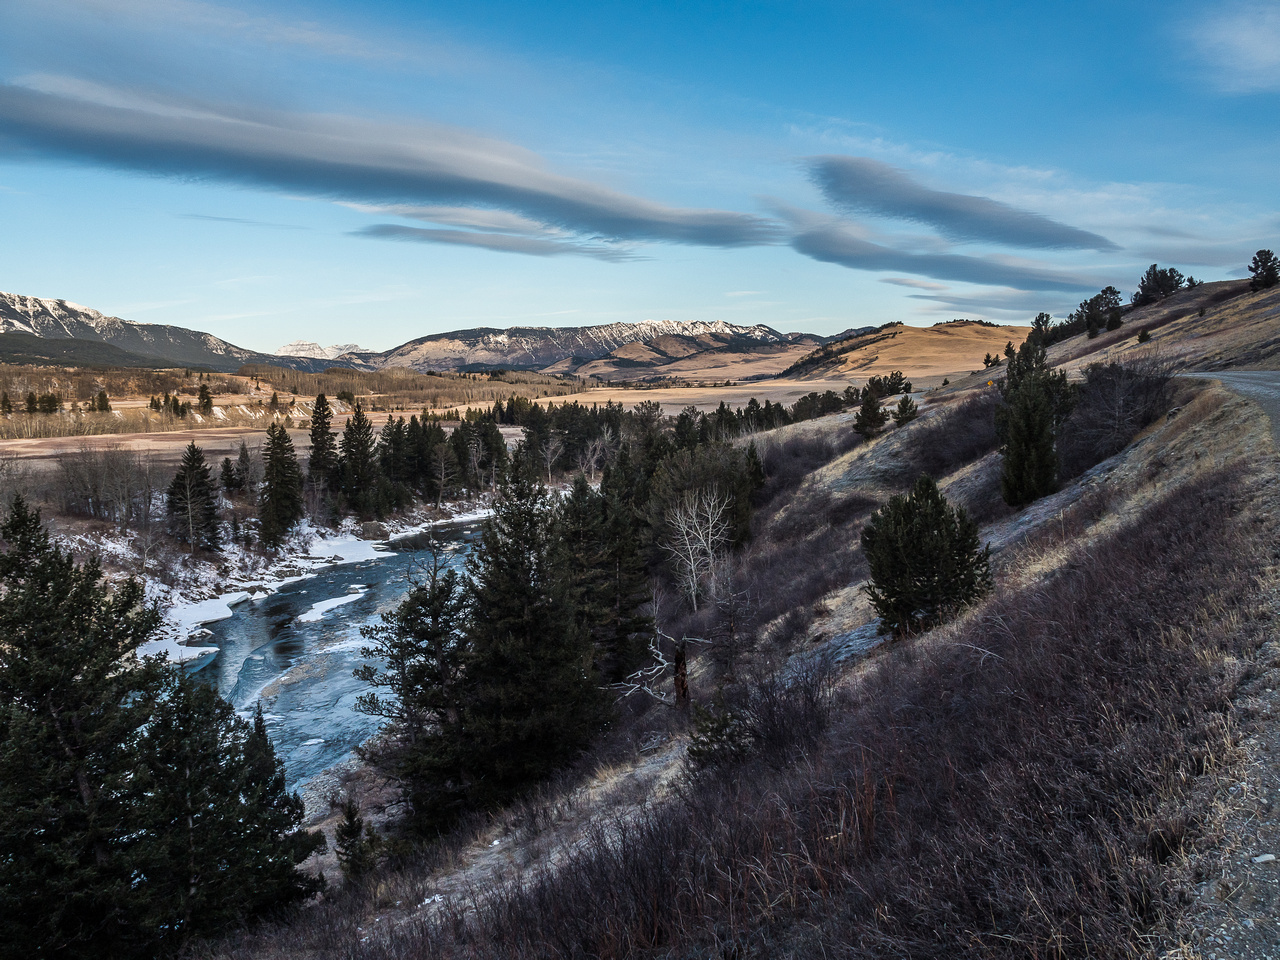 Lovely shot off the main road on the north side of the Oldman River (at lower left).